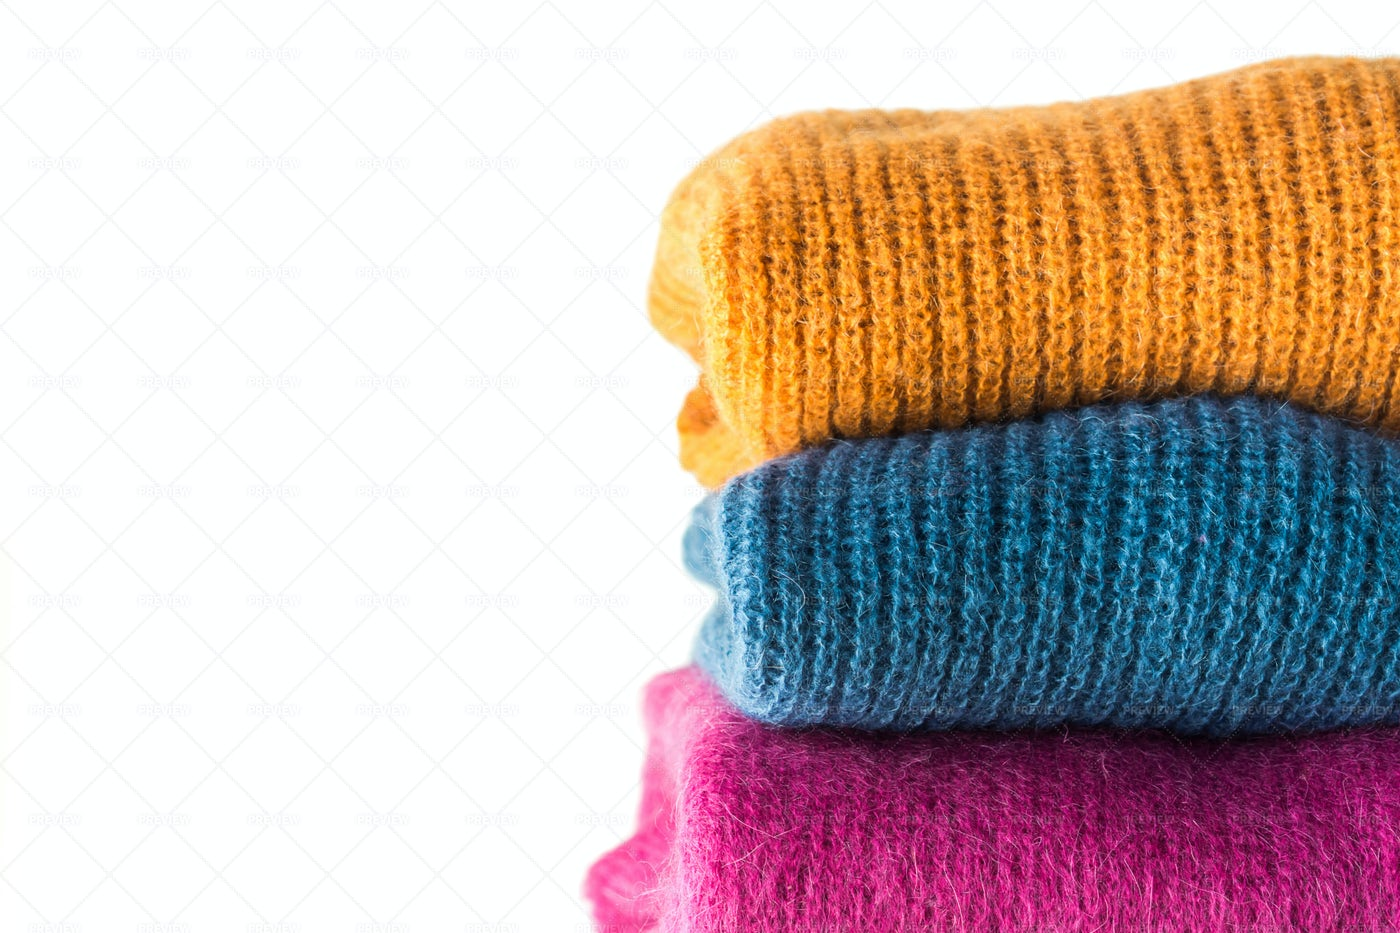 Pile Of Woolen Sweaters: Stock Photos